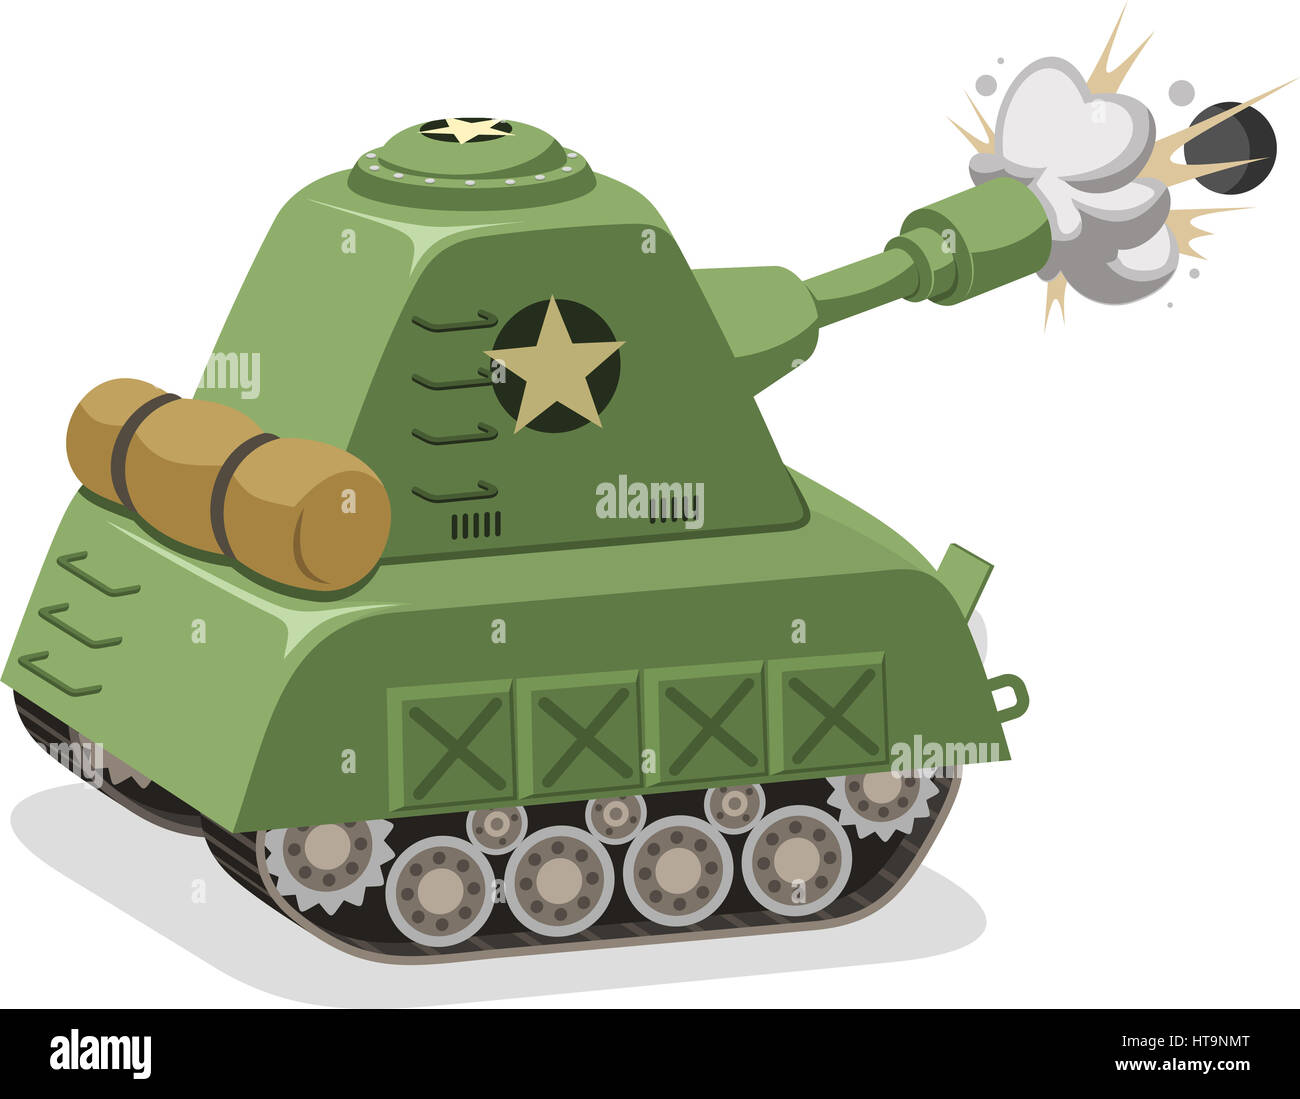 Army tank cartoon images Tiananmen Square and Tank Boy - Mandela Effect